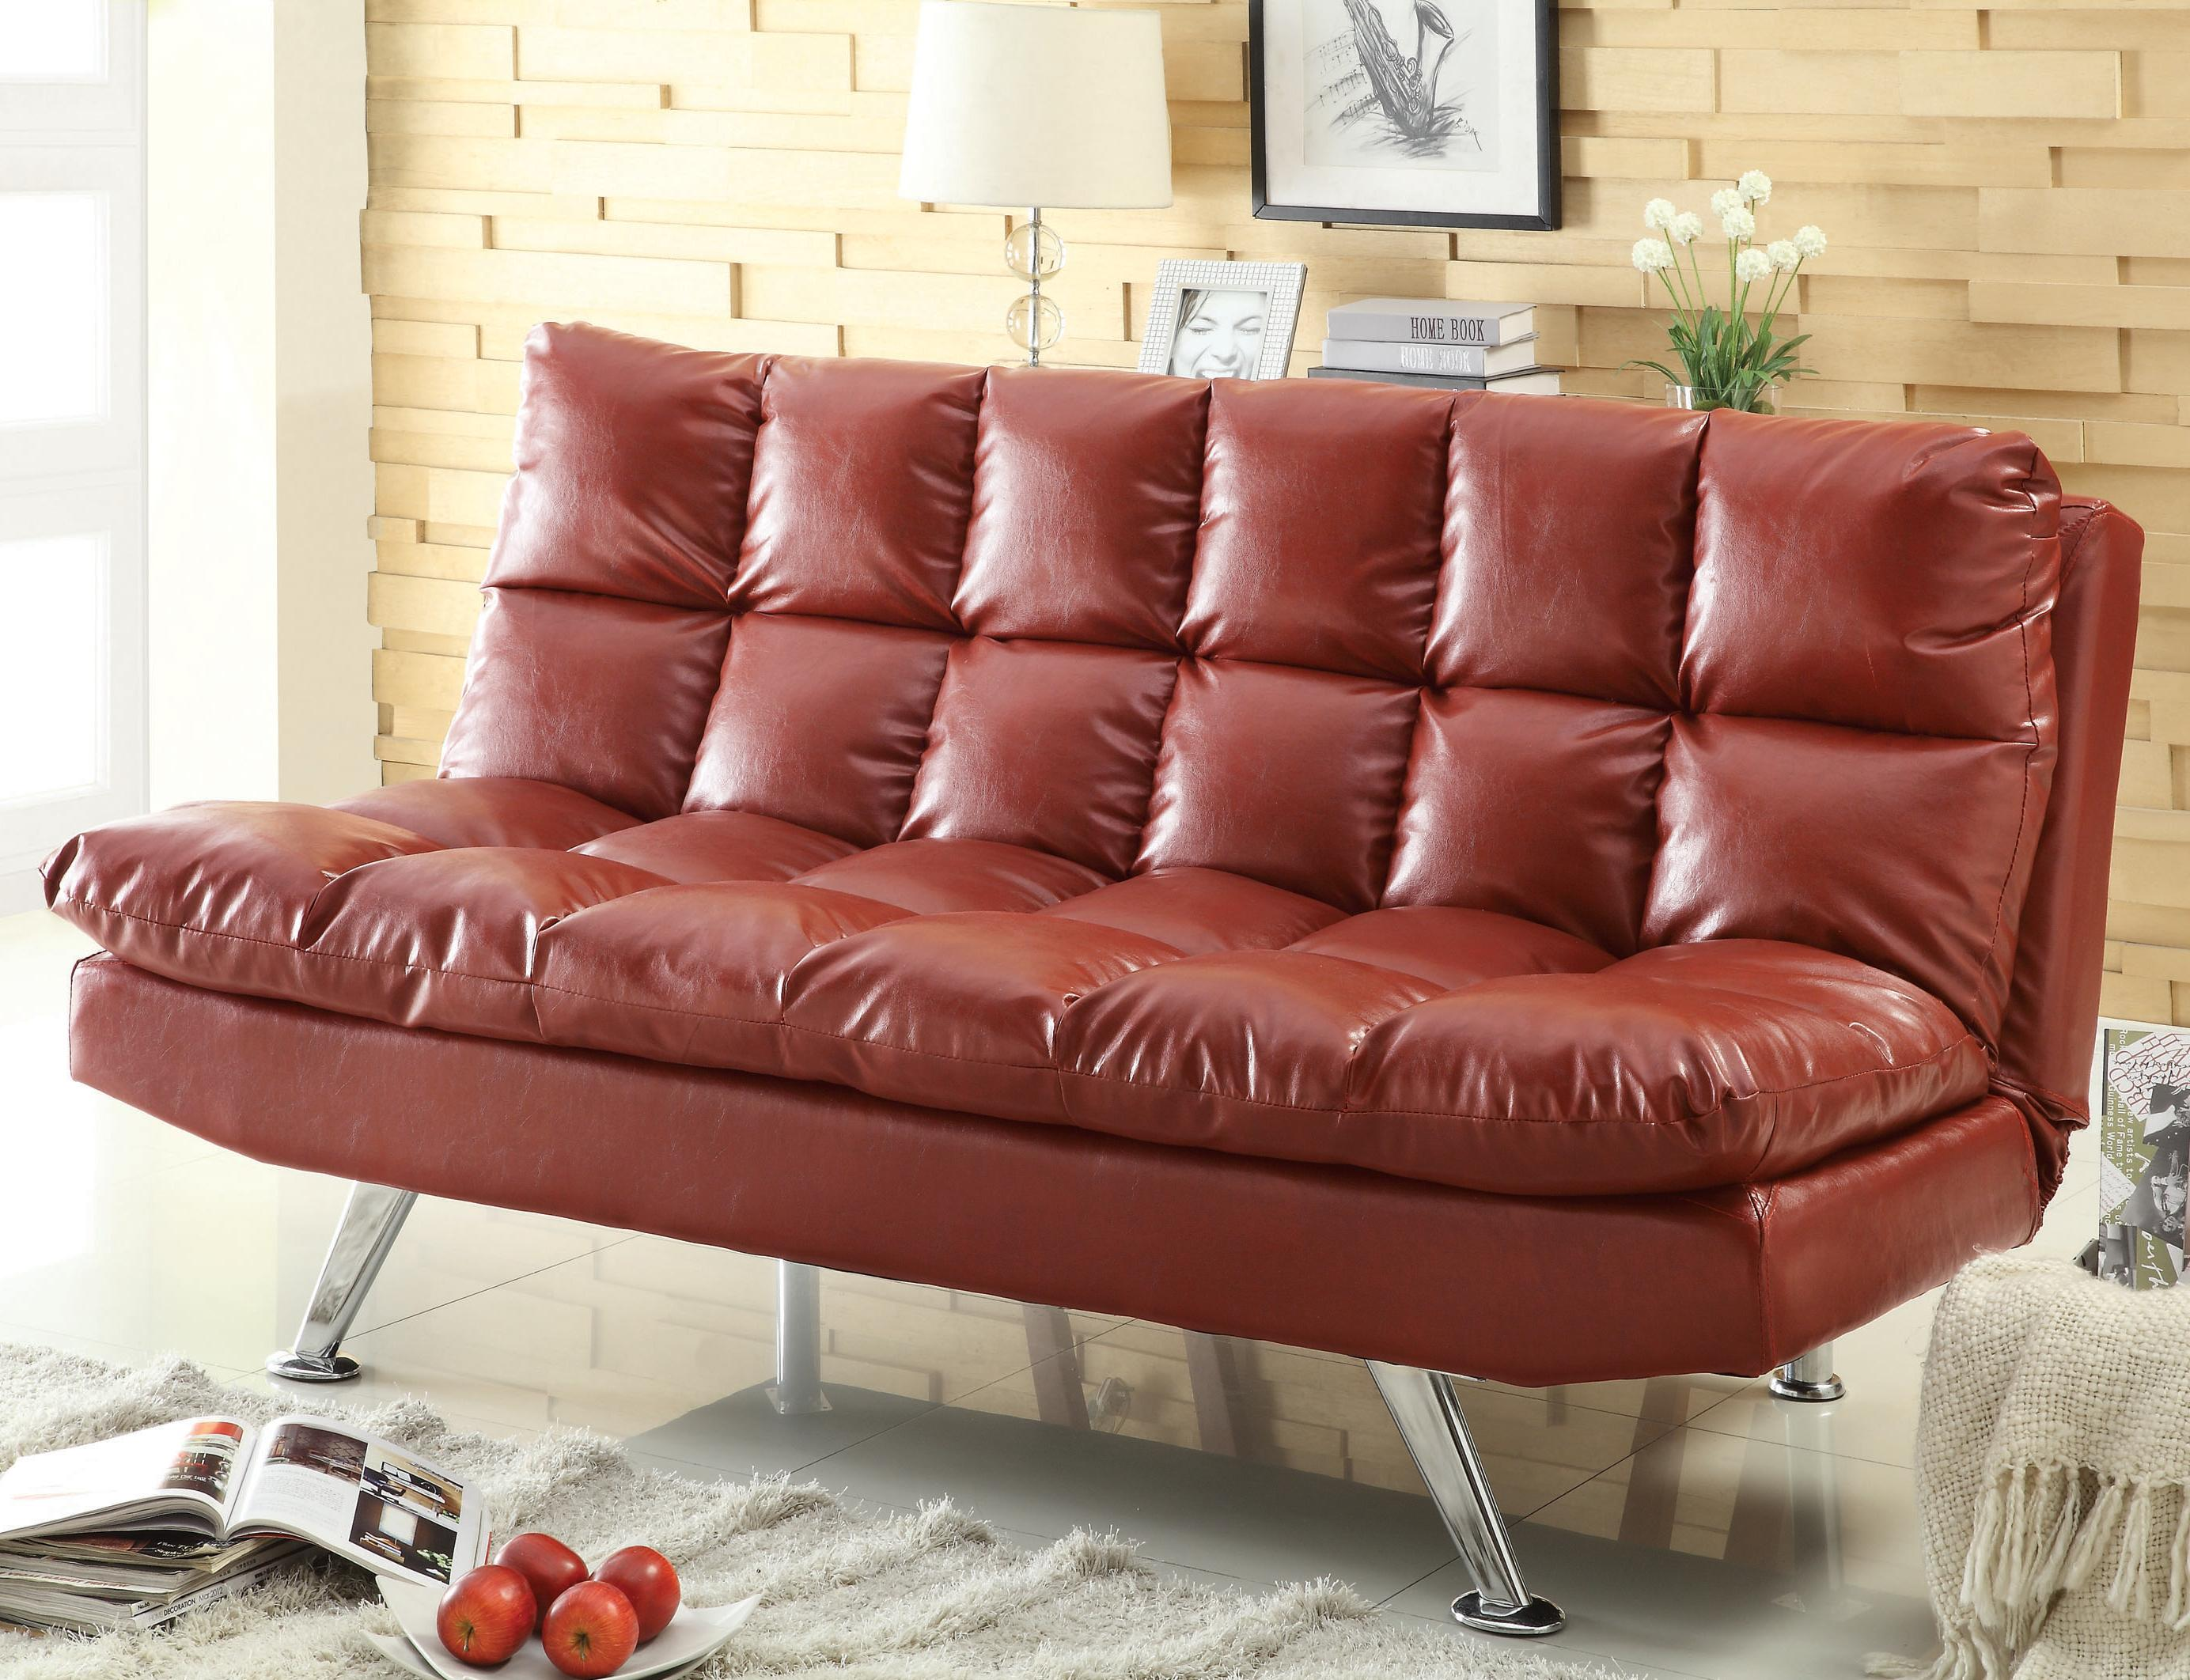 steelcase sofa bed shabby chic ideas red vinyl overstuffed fpvr100 bizchair